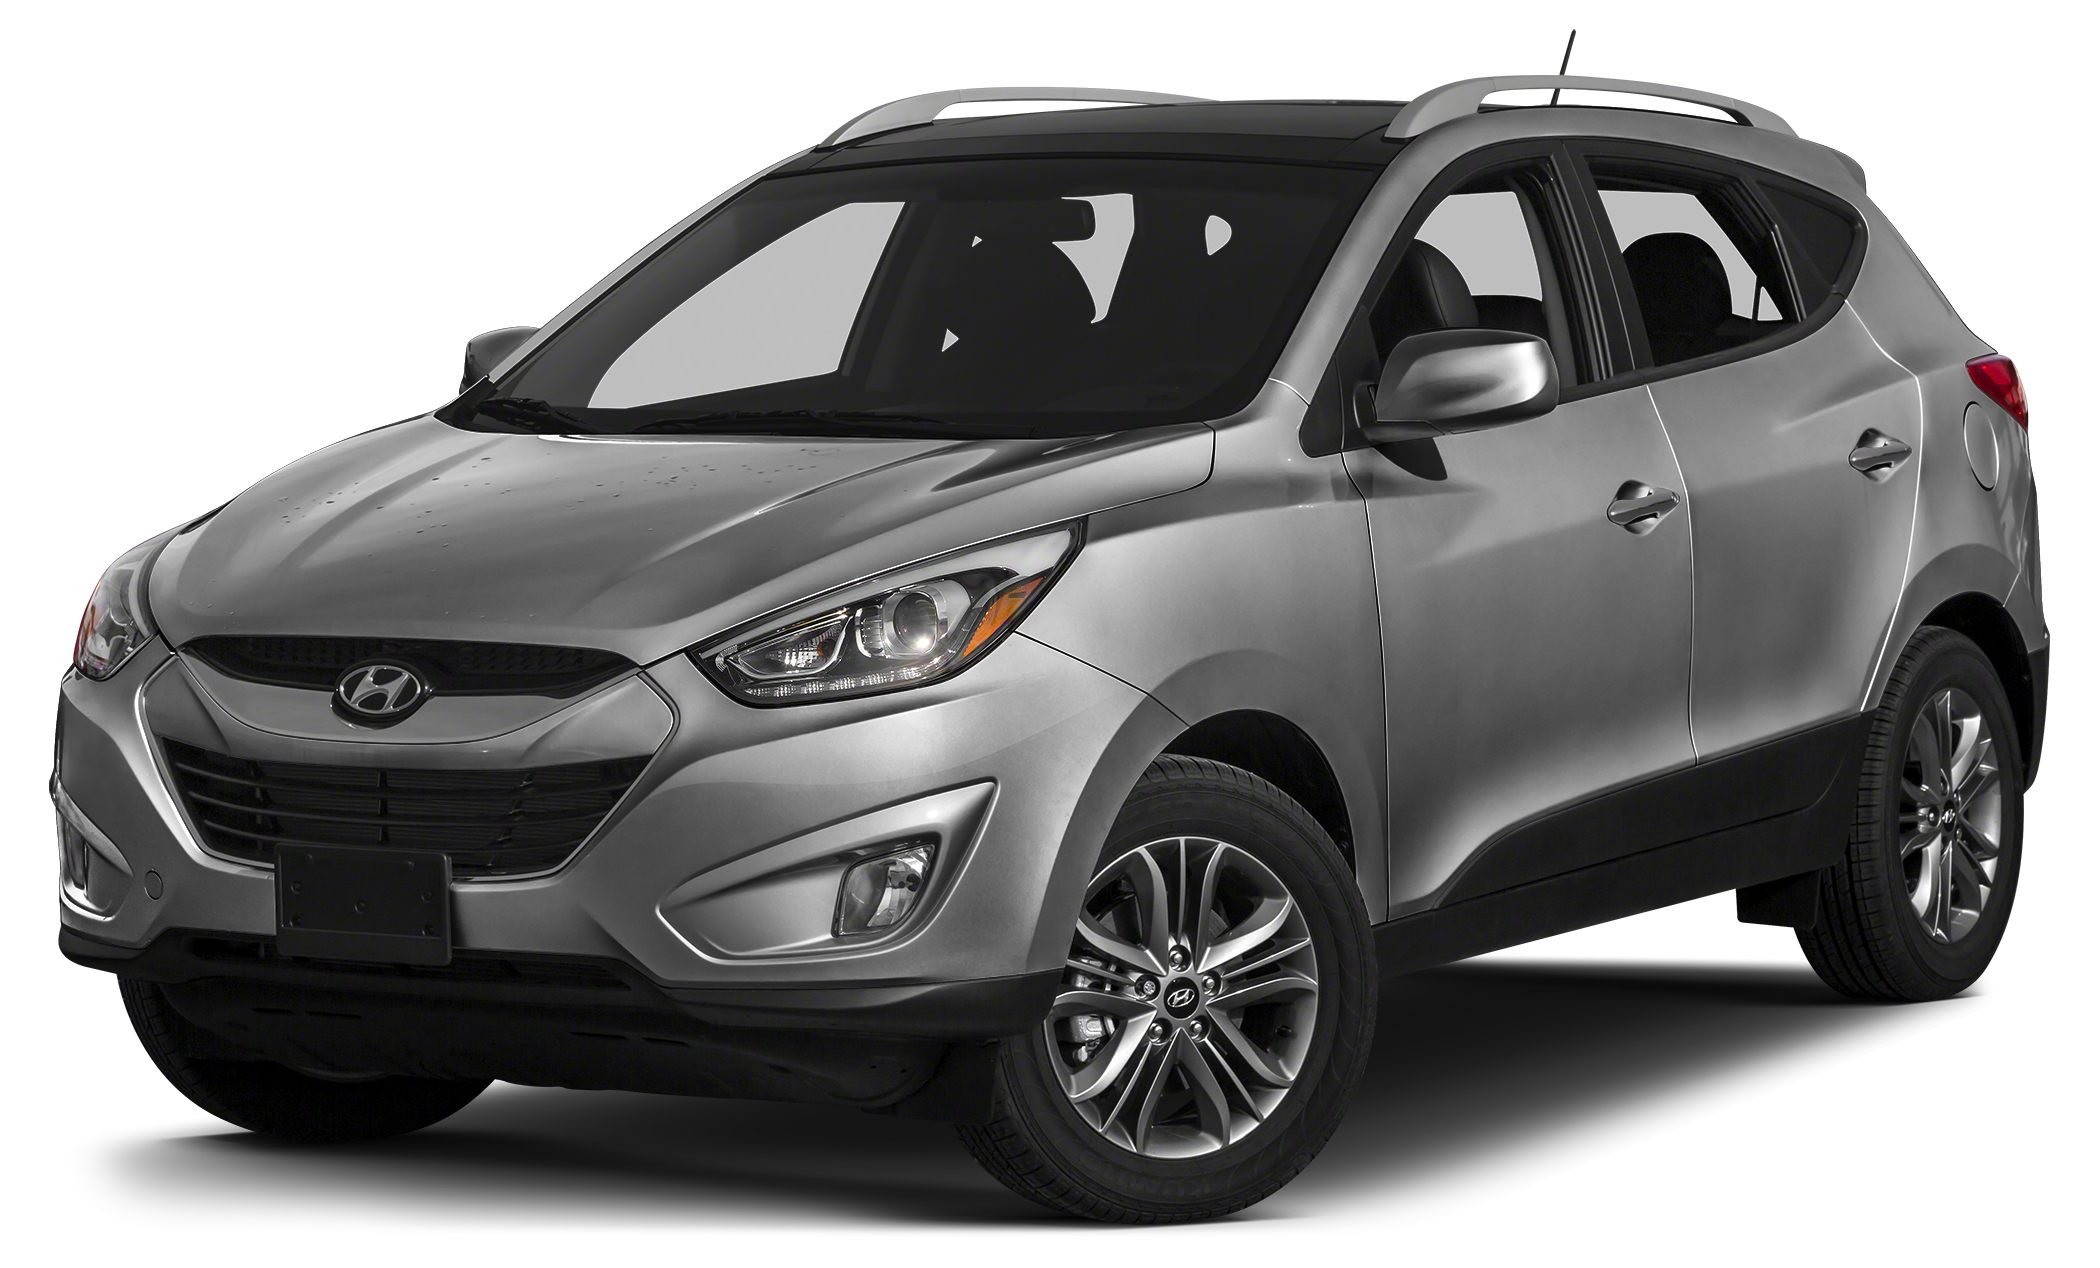 2015 Hyundai Tucson SE 2015 Hyundai Tucson SE in Graphite Gray Metallic Bluetooth for Phone and A